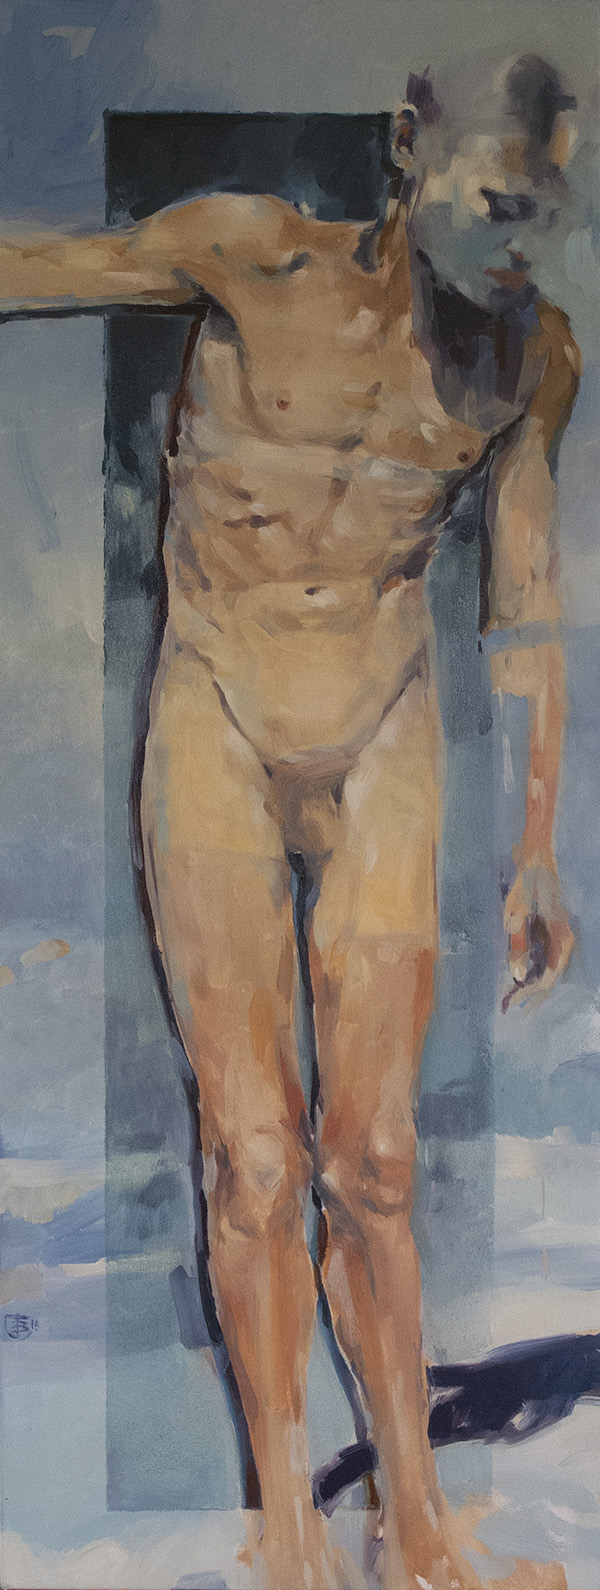 After Noon oil on canvas 153 x 56